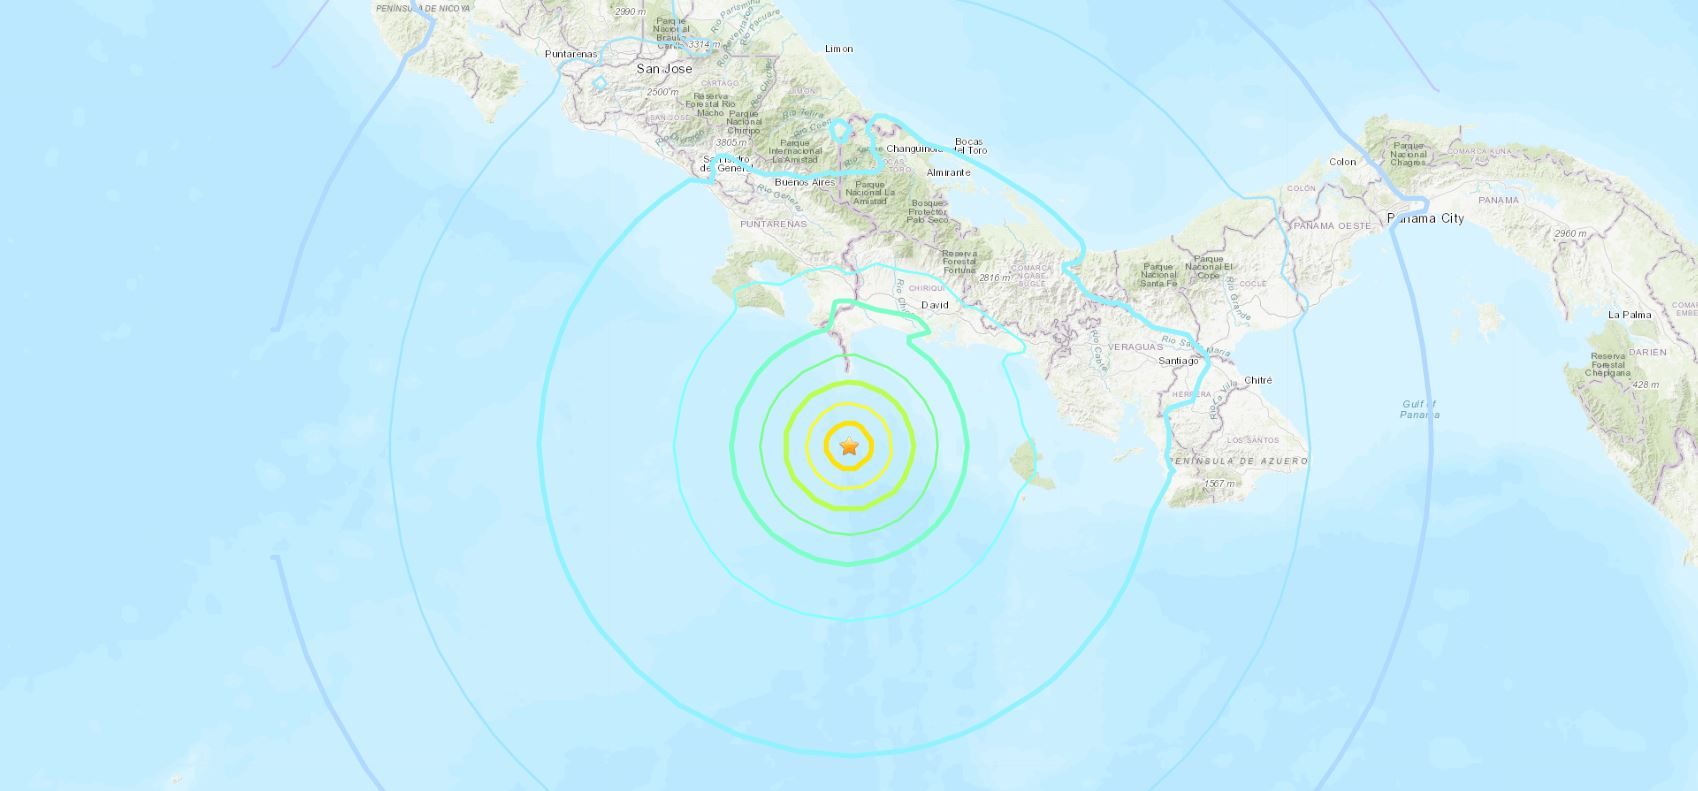 A USGS map shows the location of a quake that occurred July 21, 2021.